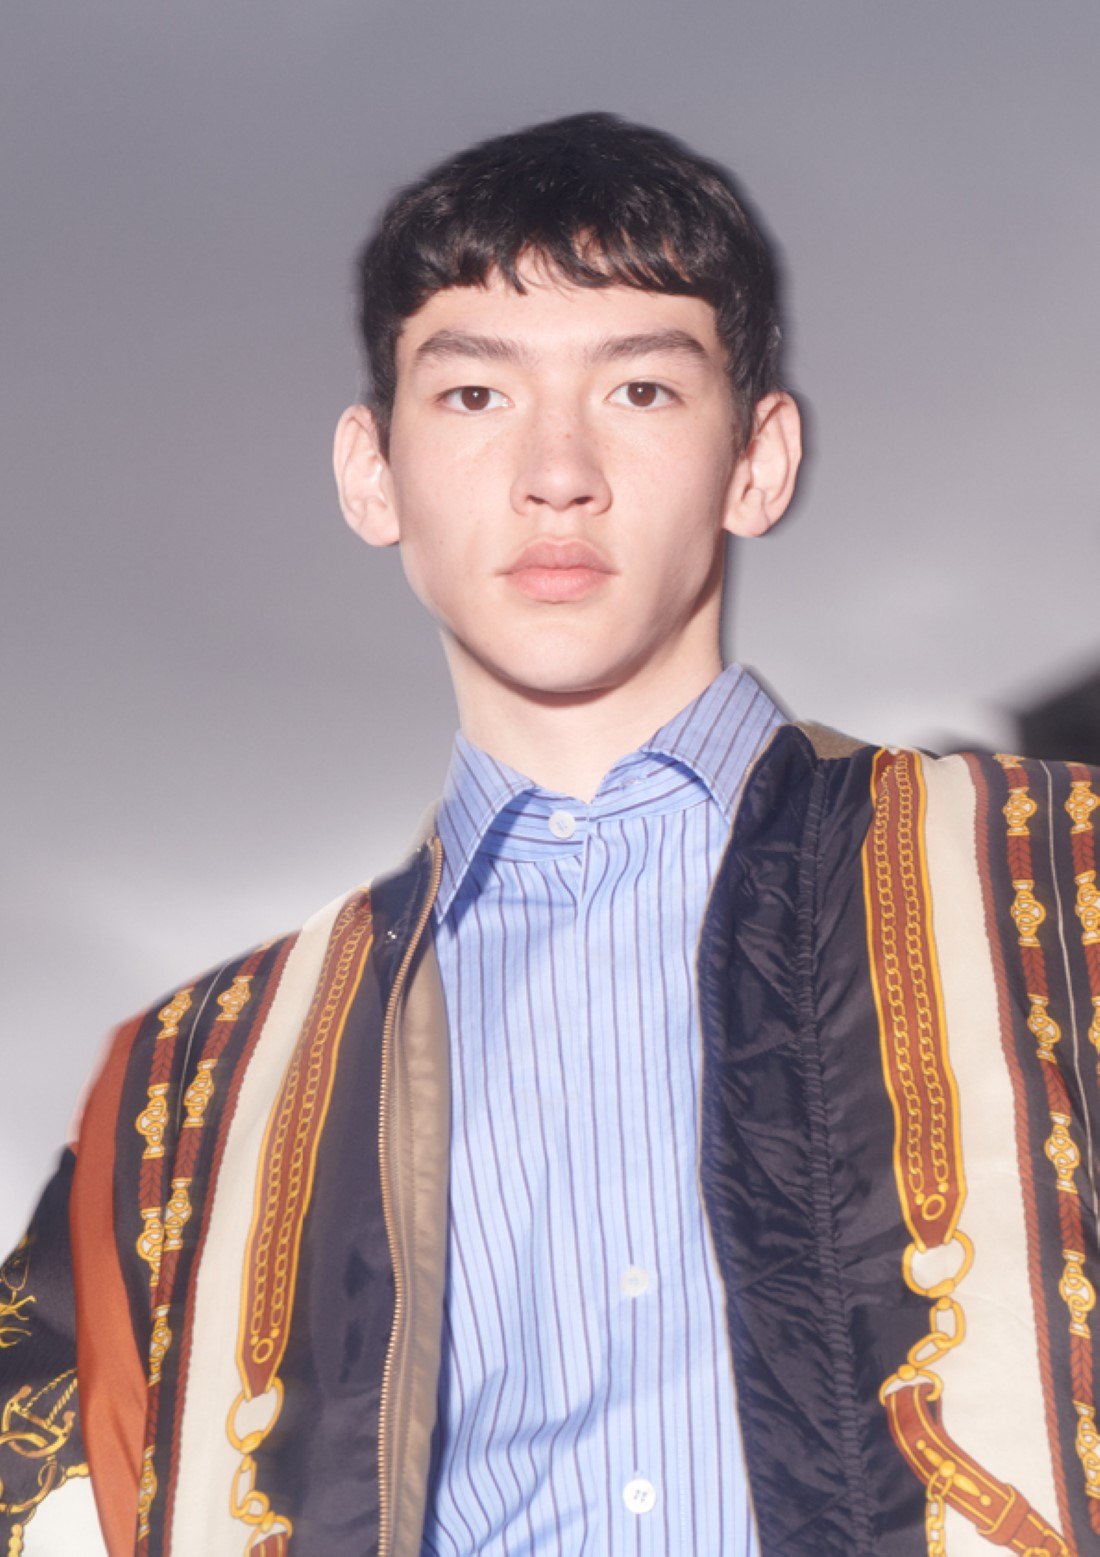 H&M x TOGA ARCHIVES